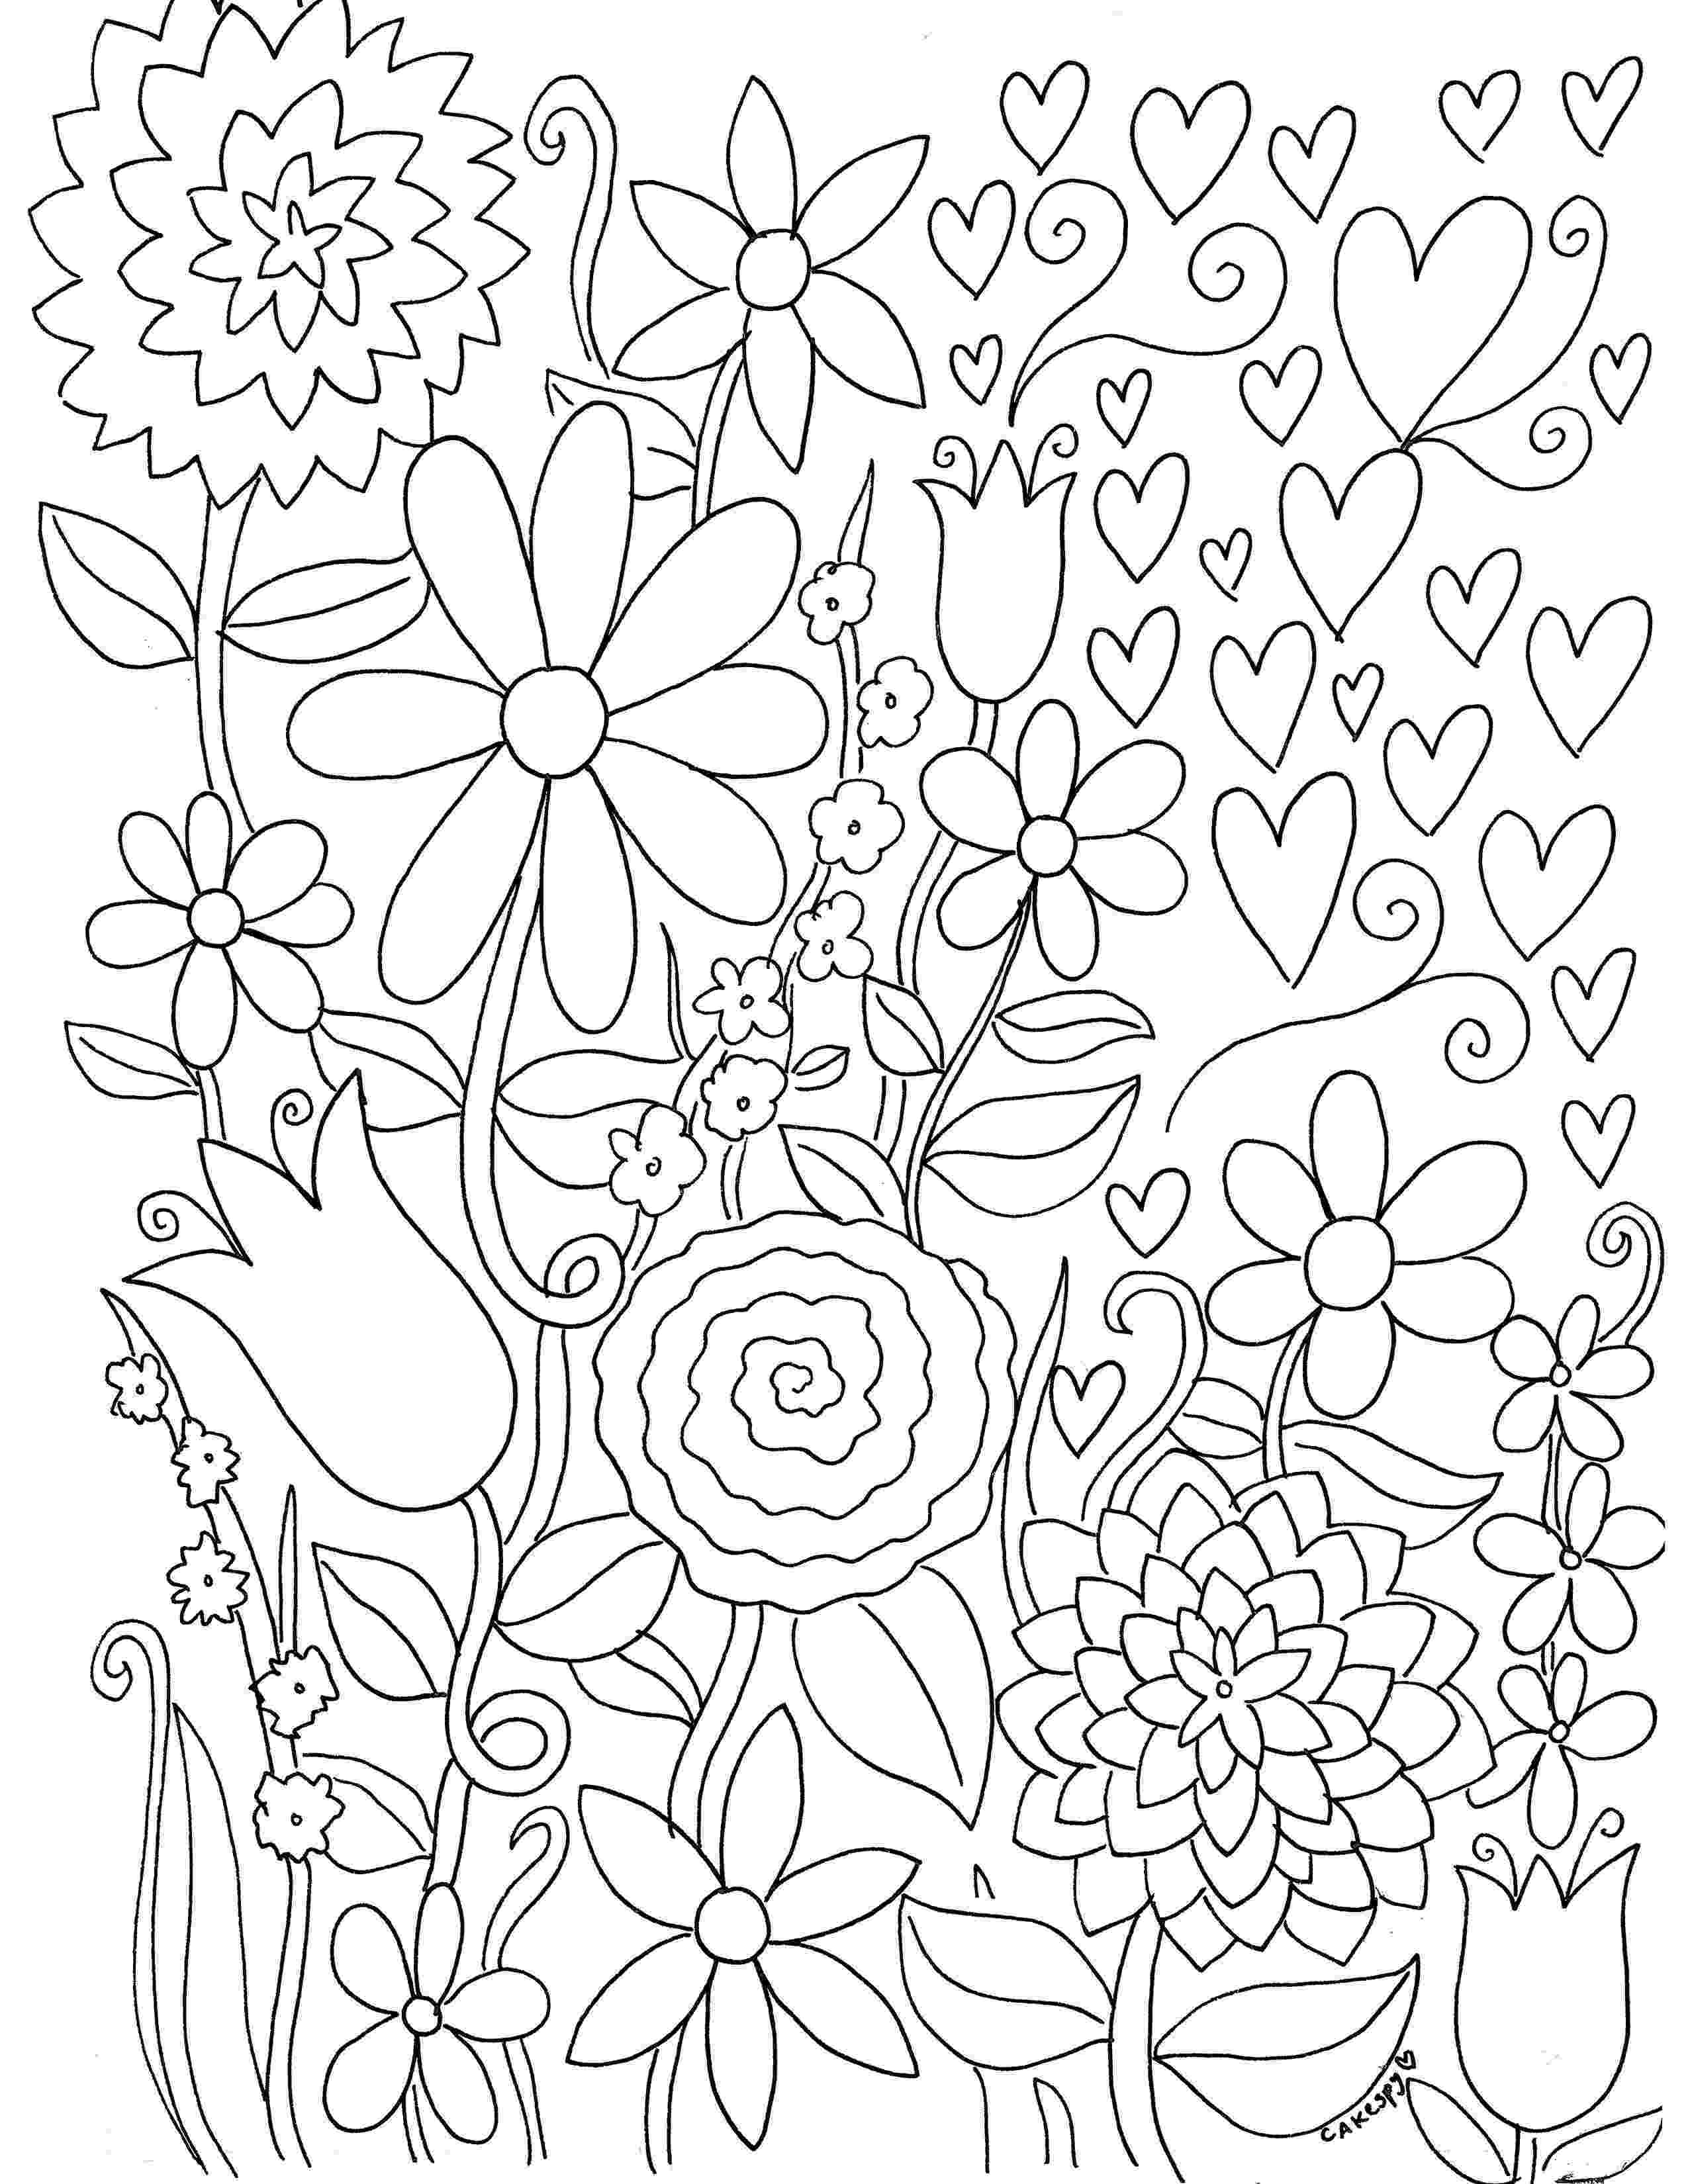 coloring book for grown ups printable coloring for grown ups book for grown ups coloring printable